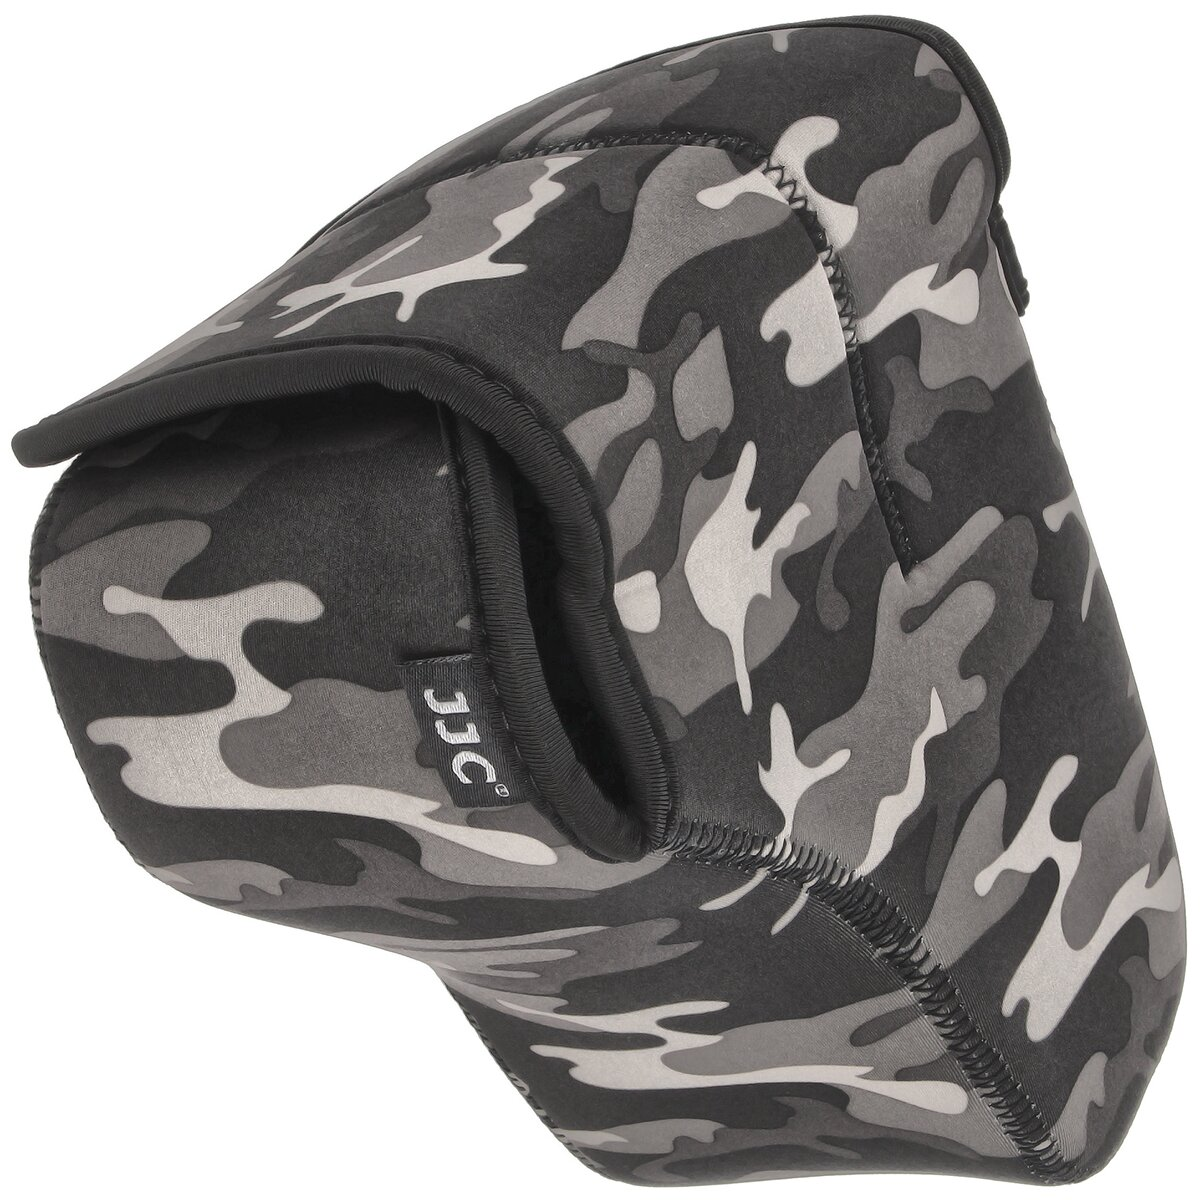 Universal Waterproof Neoprene Camera Case | Protector for Large SLR DSLR Cameras with Lens | Snow Camouflage